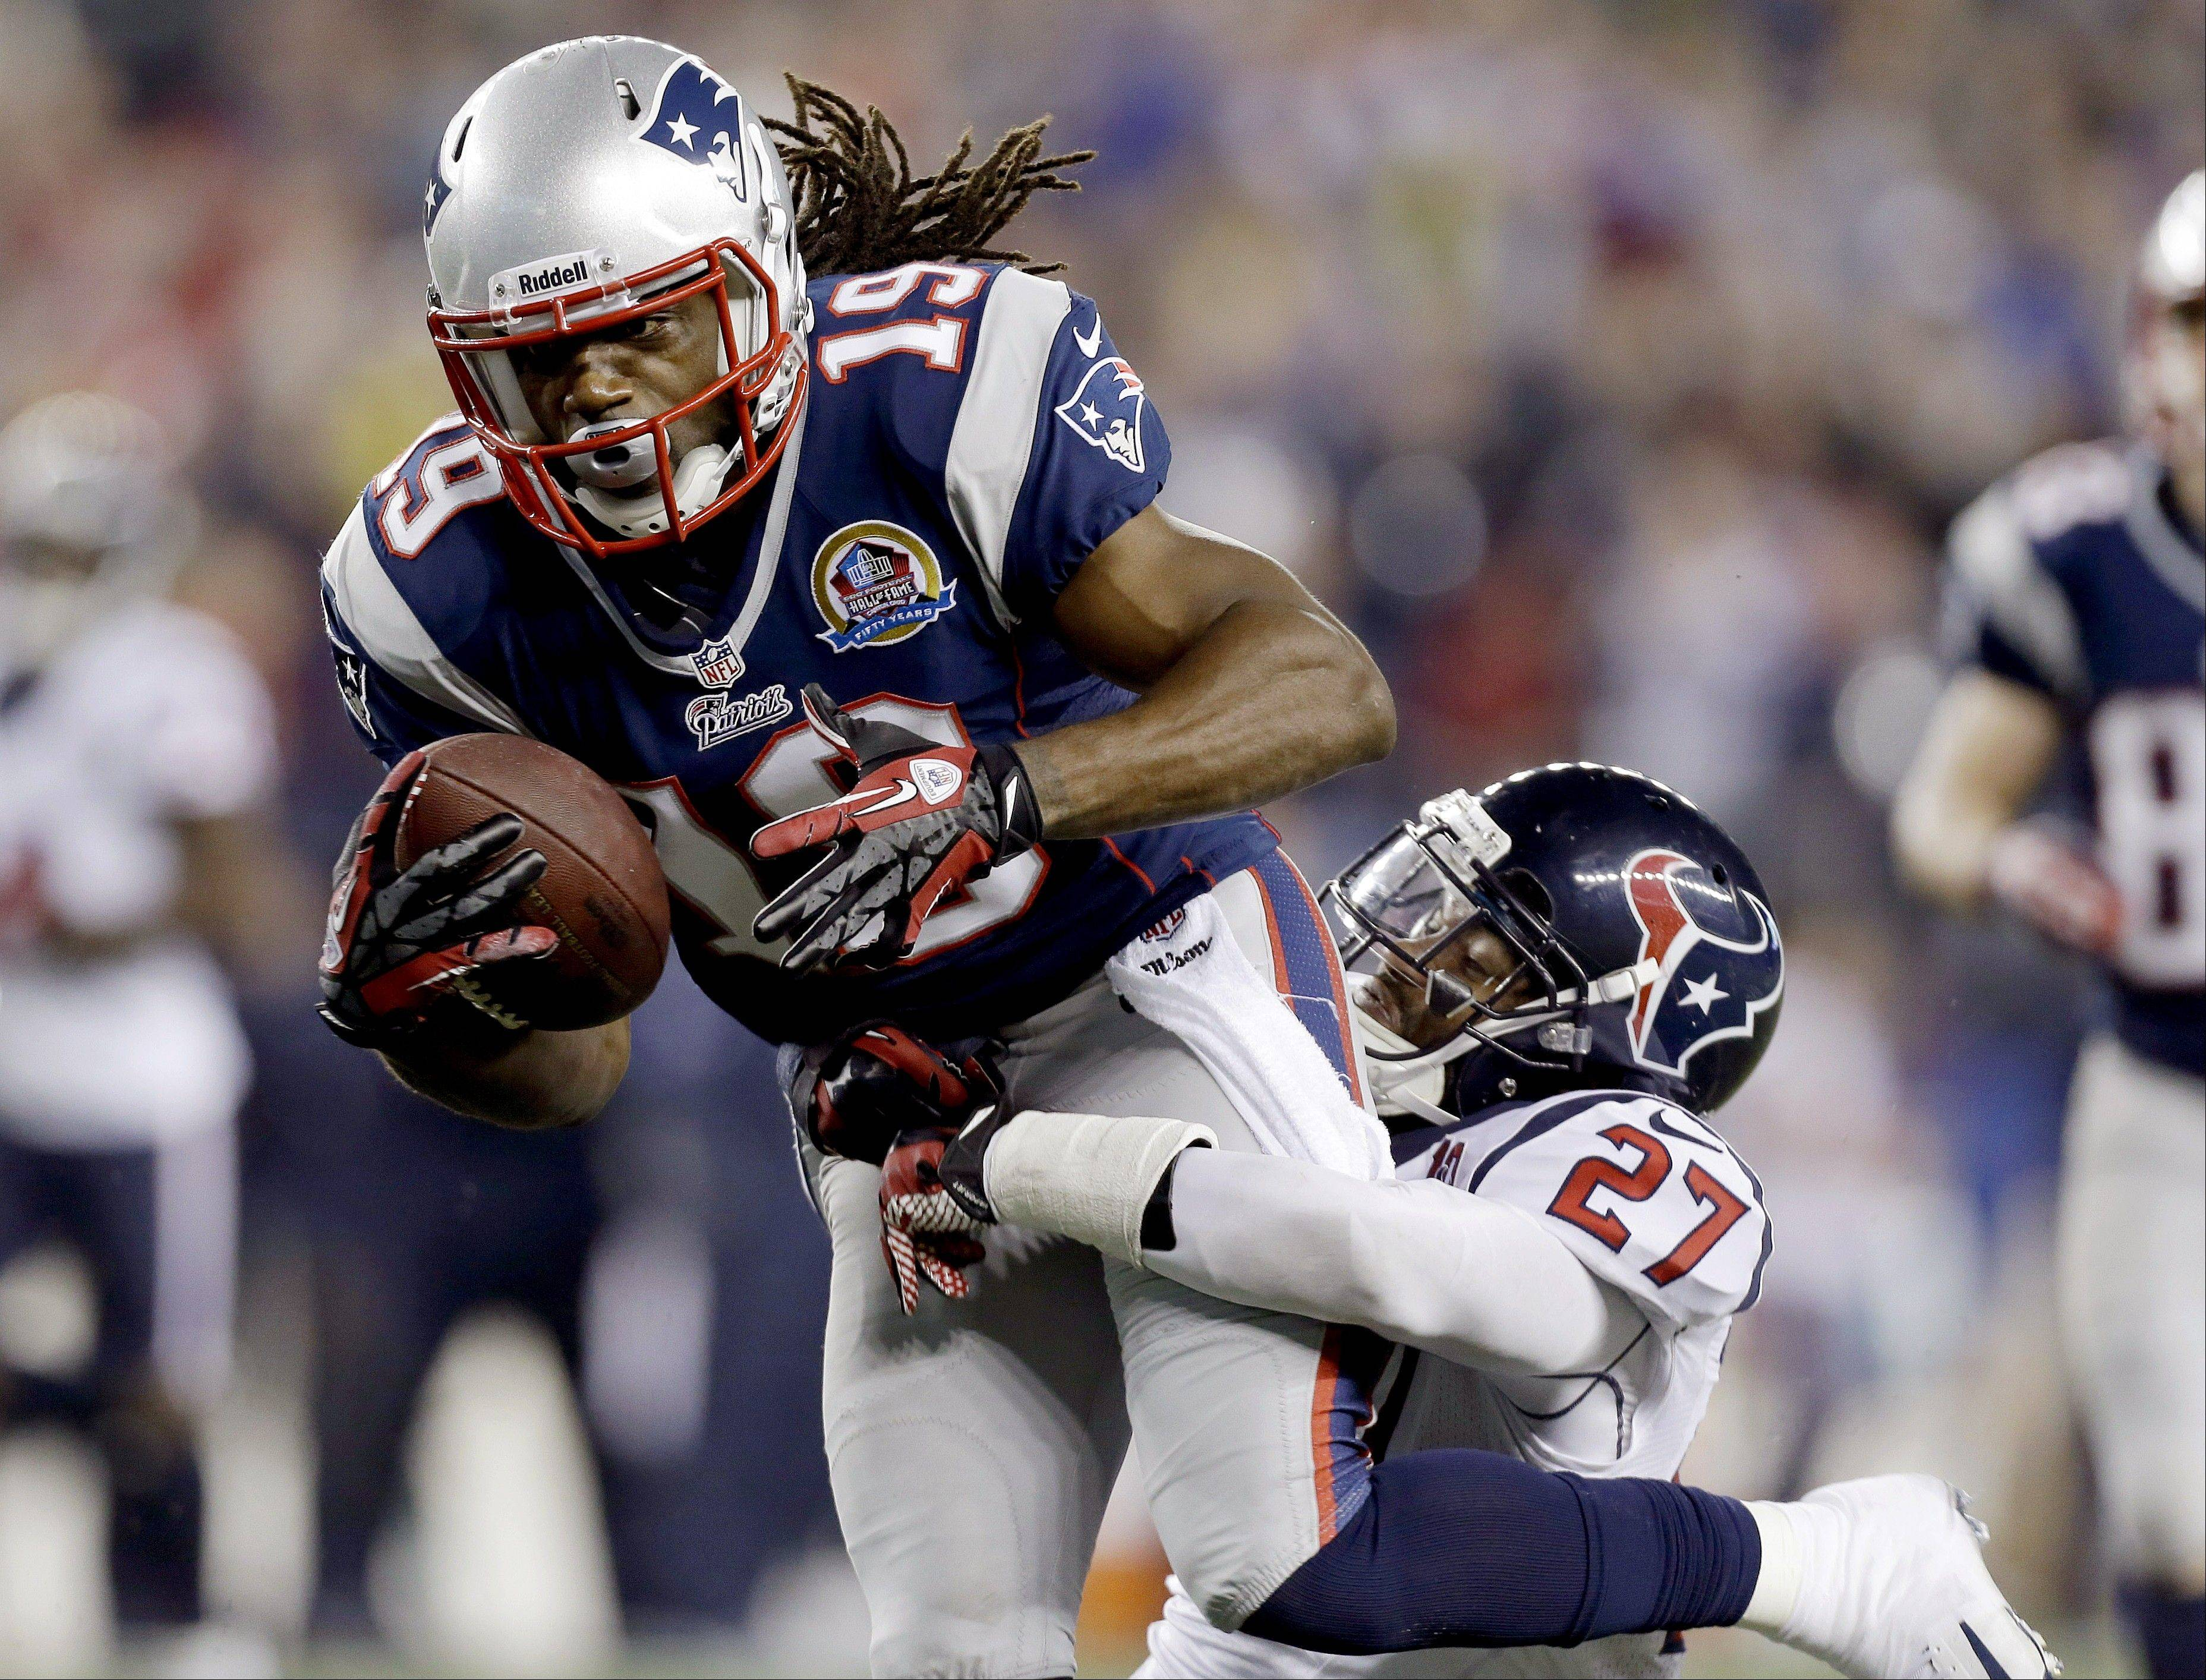 FILE - In this Dec. 10, 2012, file photo, New England Patriots wide receiver Donte' Stallworth (19) dives into the end zone for a touchdown while dragging Houston Texans defensive back Quintin Demps, right, during the third quarter of an NFL football game in Foxborough, Mass. Stallworth, a free agent, was hospitalized Saturday, March 16, 2013, with serious burns after the hot air balloon carrying him and two other people crashed into power lines above South Florida, his agent, Drew Rosenhaus, said.